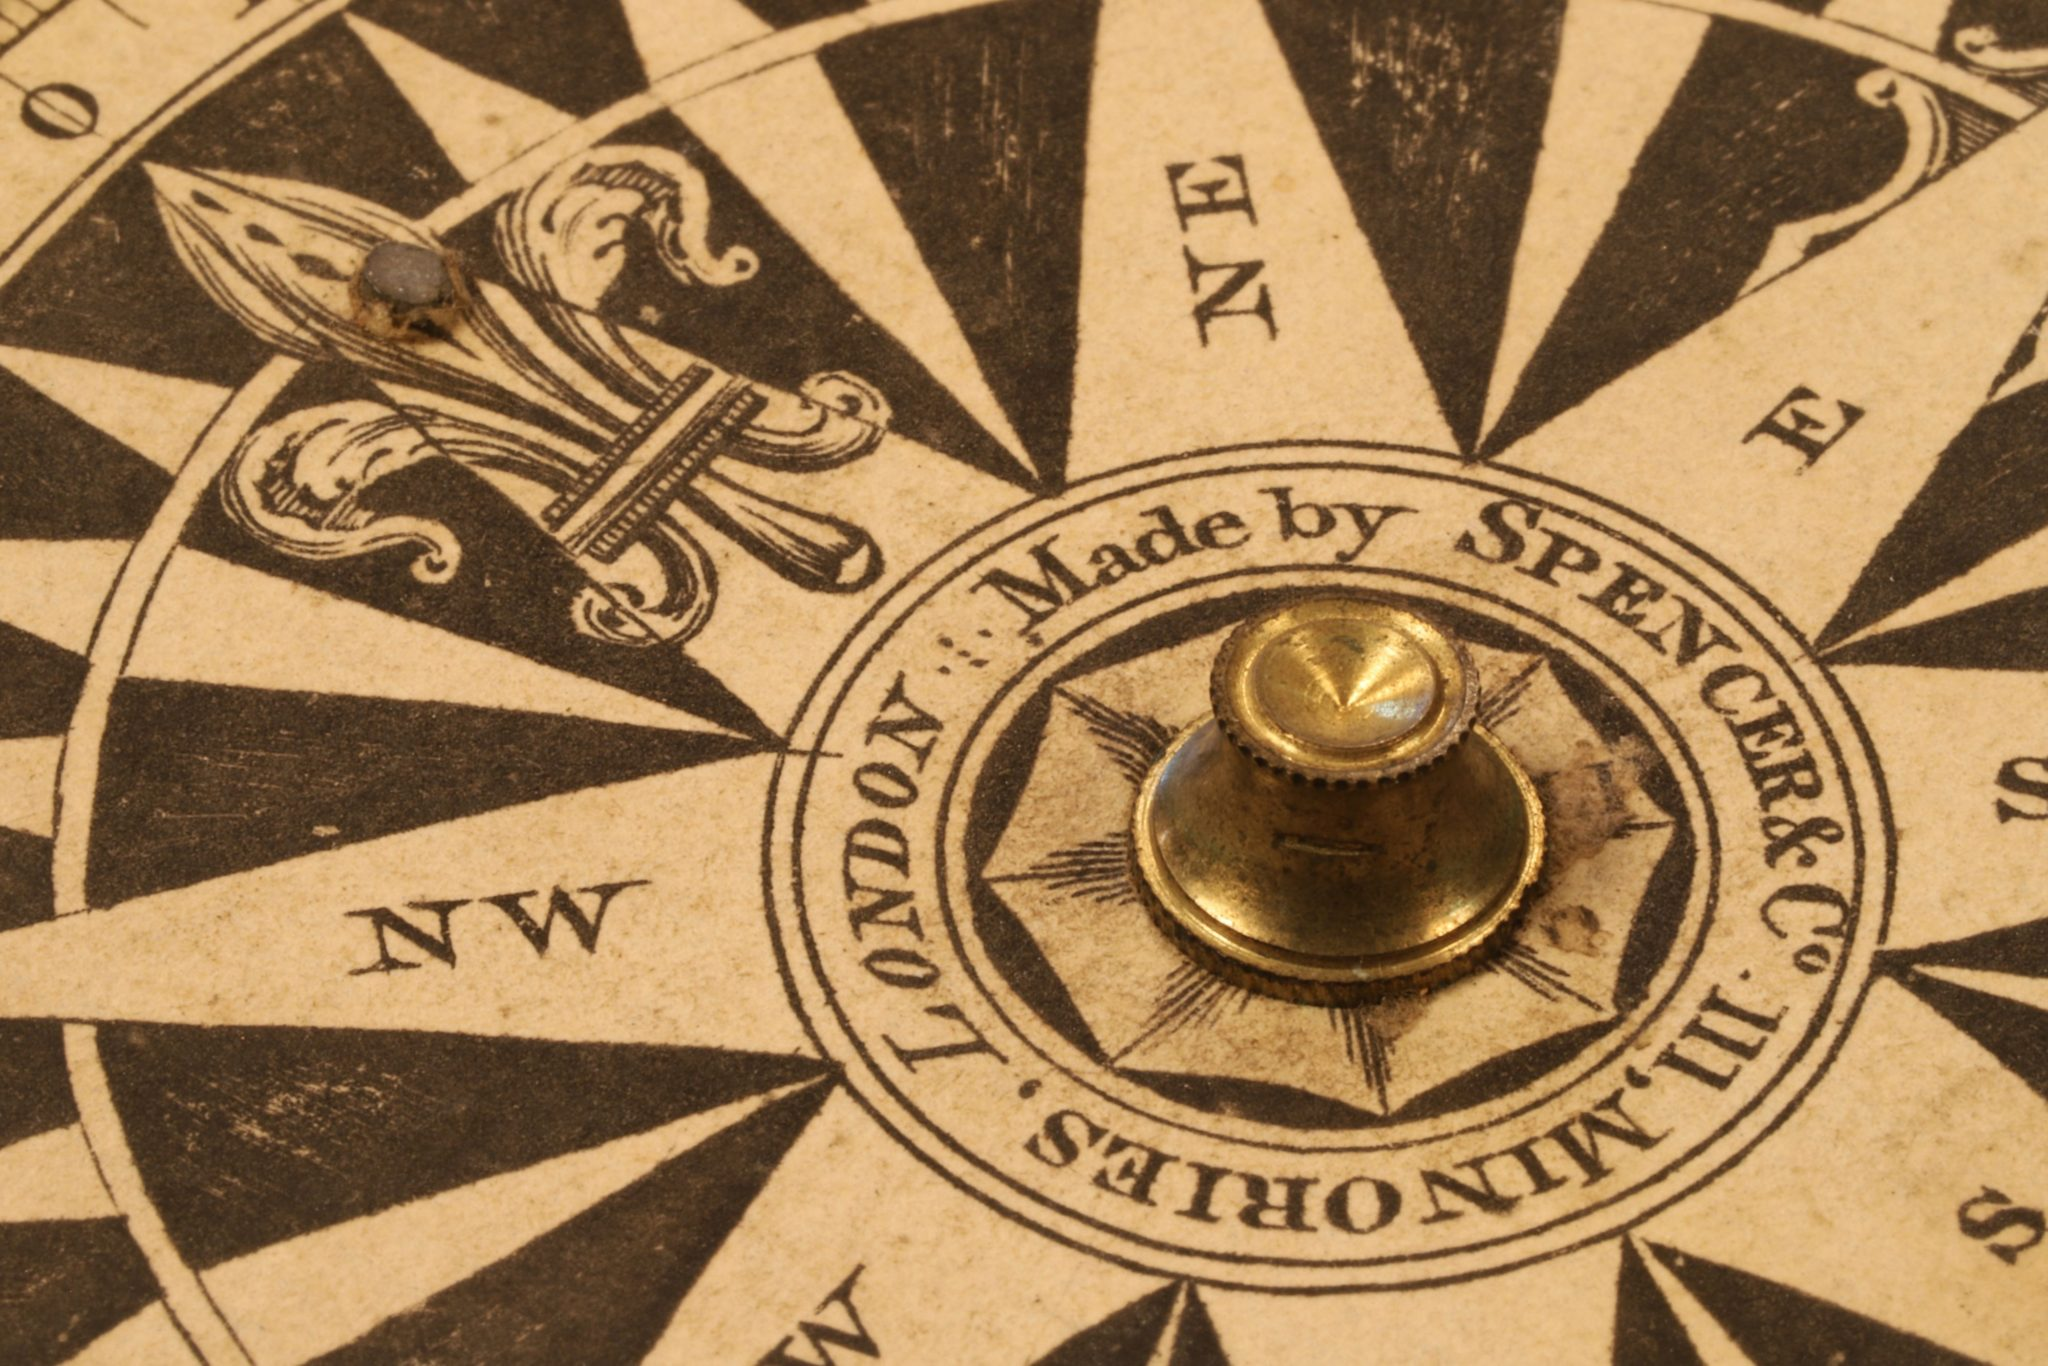 Image of Mariners or Explorers Compass by Spencer Browning & Co